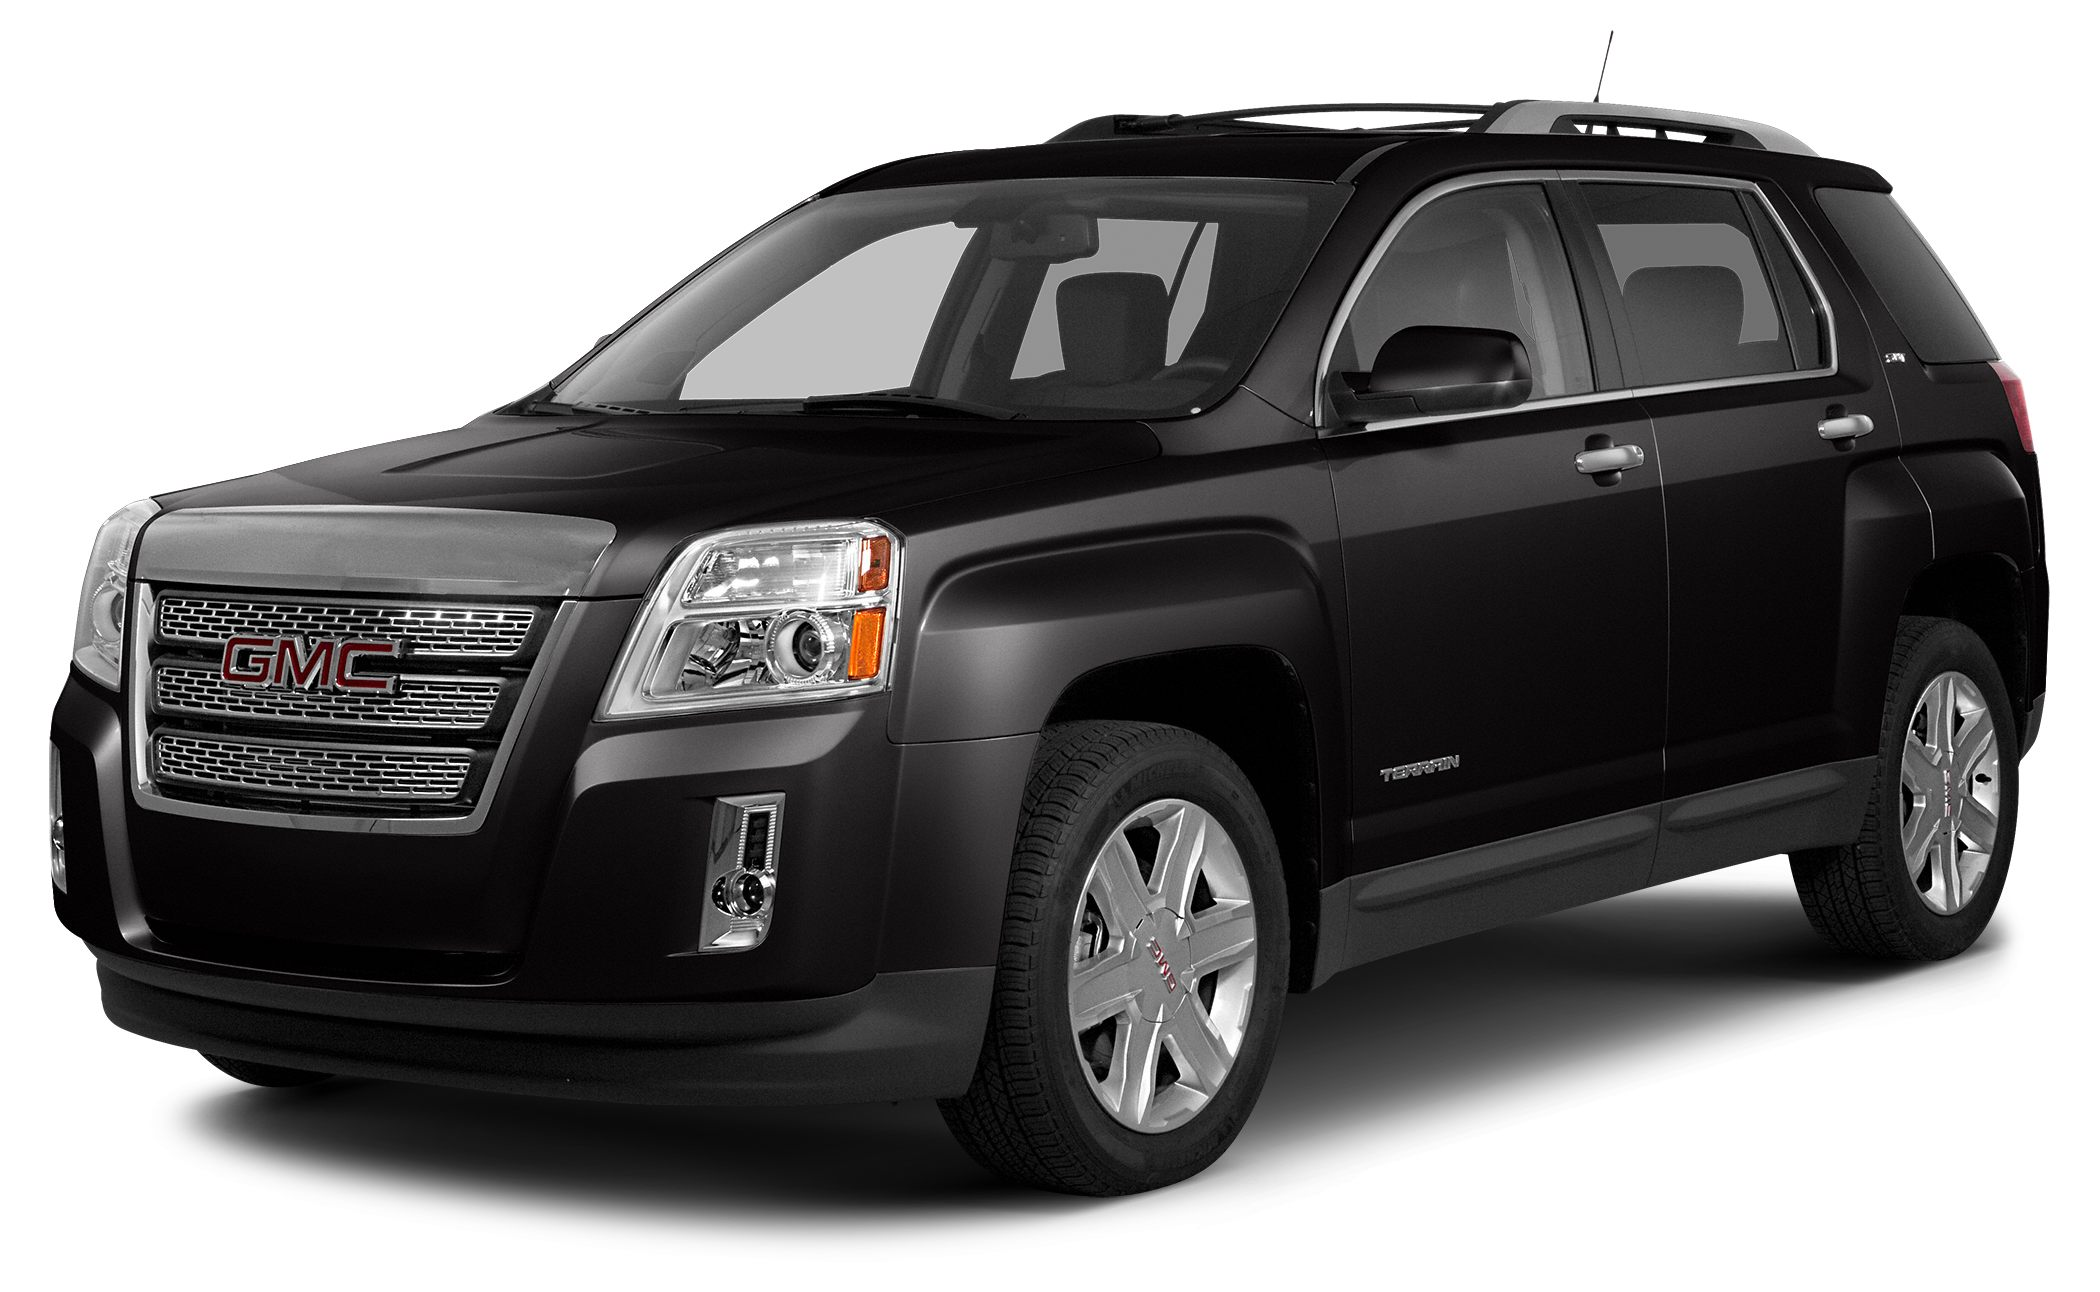 2014 GMC Terrain SLE-1 WAS 18800 PRICED TO MOVE 700 below Kelley Blue Book EPA 32 MPG Hwy22